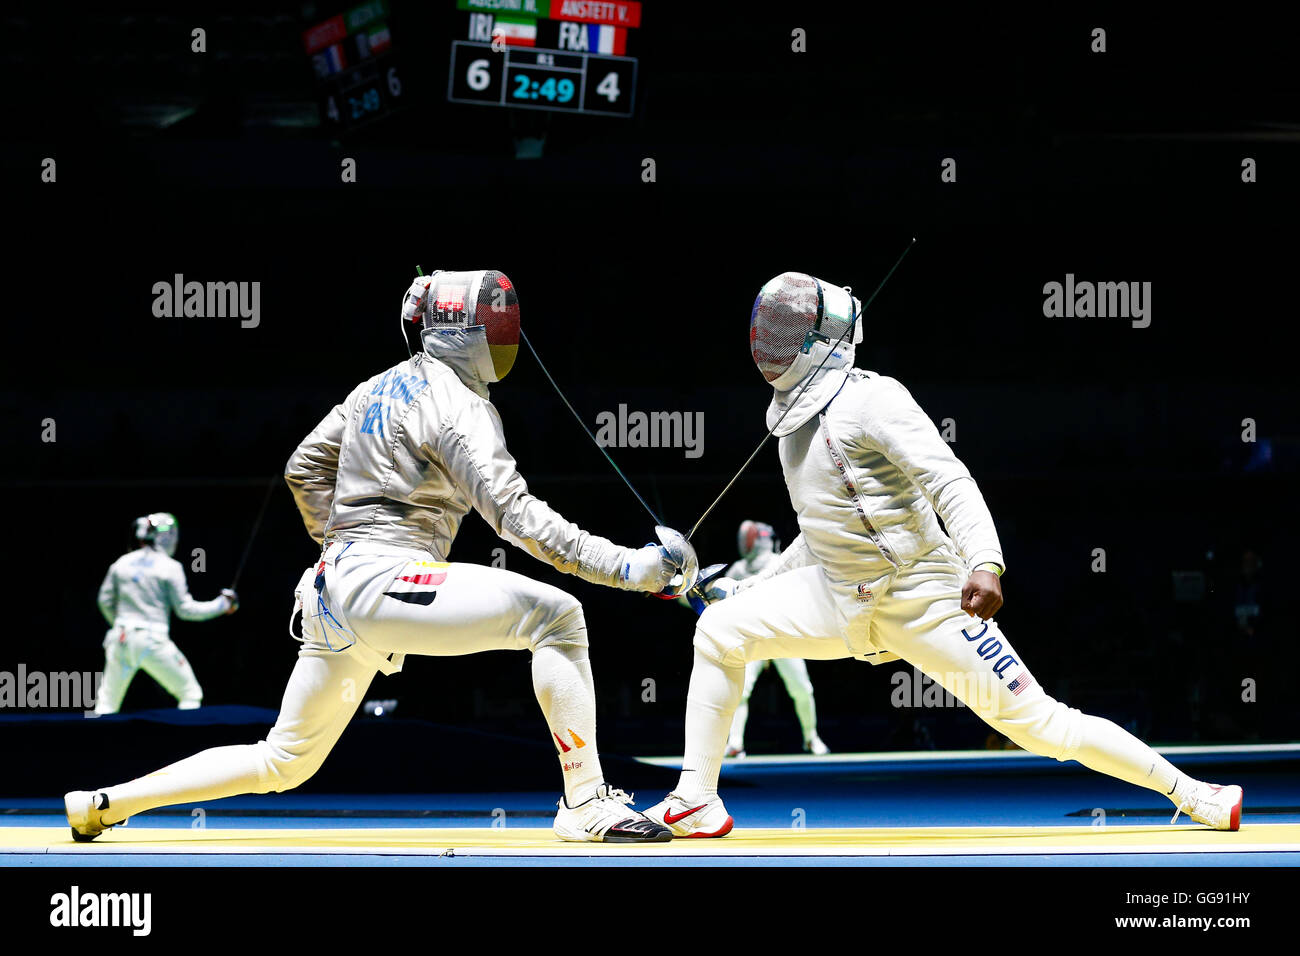 Ellen Preis foil fencer, Olympic champion and 3-time world champion Ellen Preis foil fencer, Olympic champion and 3-time world champion new photo